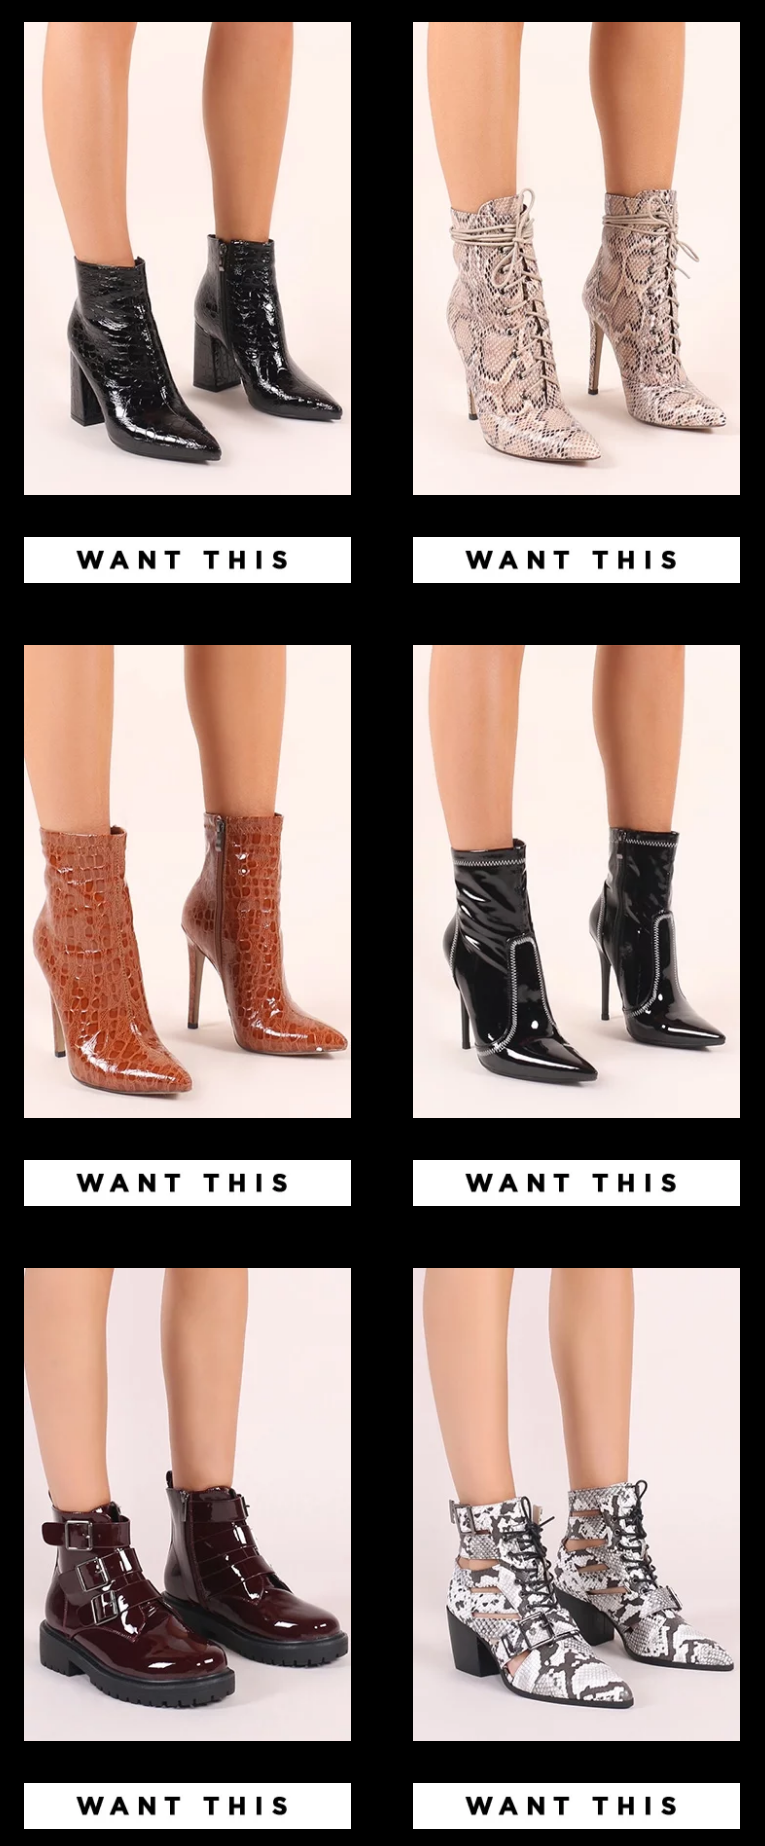 Everybody shake your boot-ies. Take boots to a whole new level in the evening with stiletto and peep...